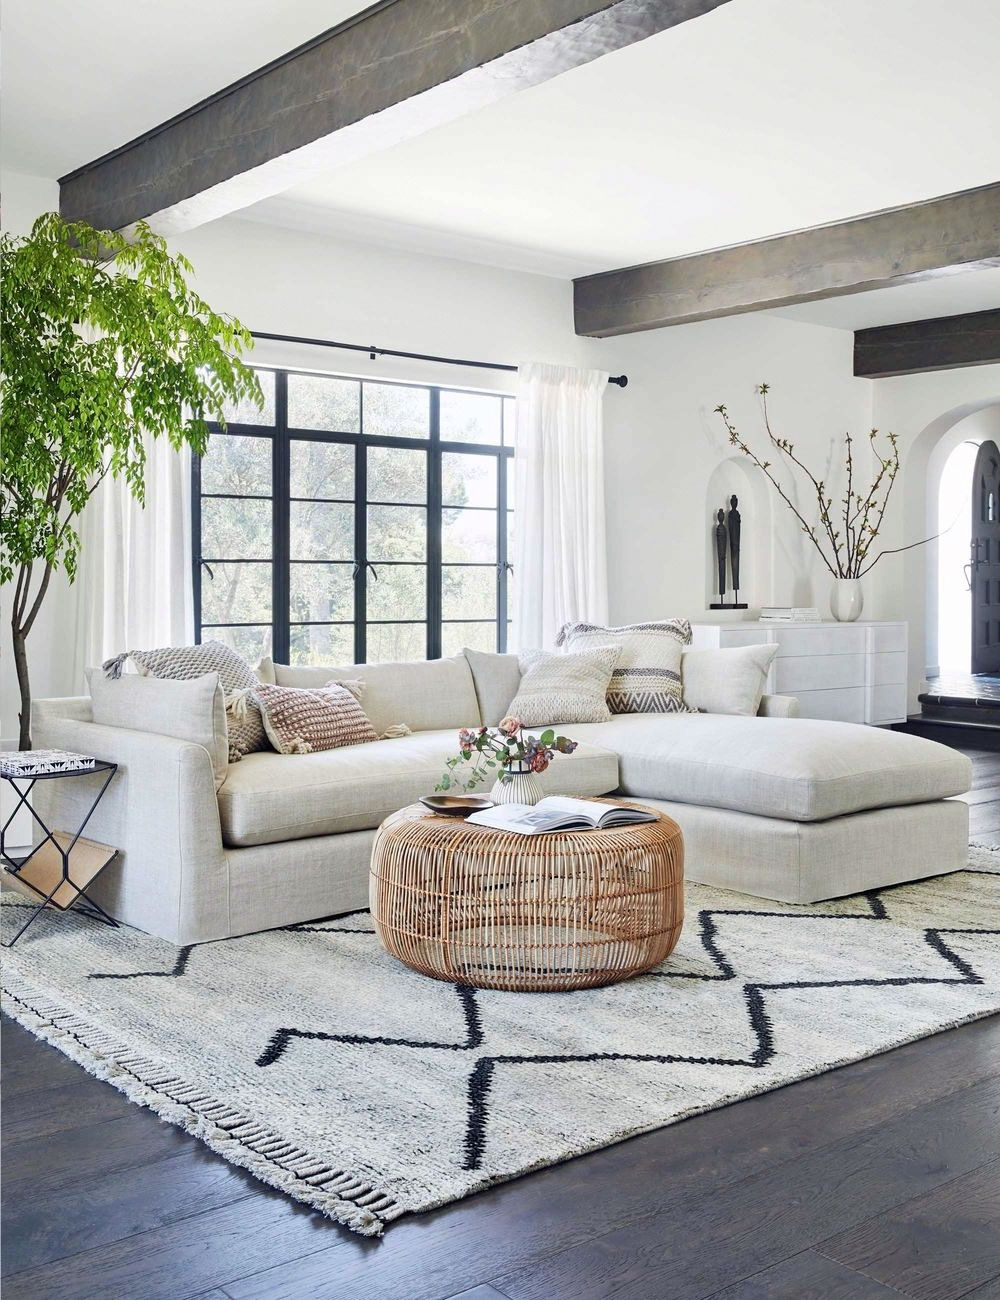 Get More Wonderful Scandinavian Living Rooms Rug Ideas.  32 Amazing Scandinavian Living Rooms Rug Inspirations The Scandinavian Rug is one of the most popular types of furniture that you...